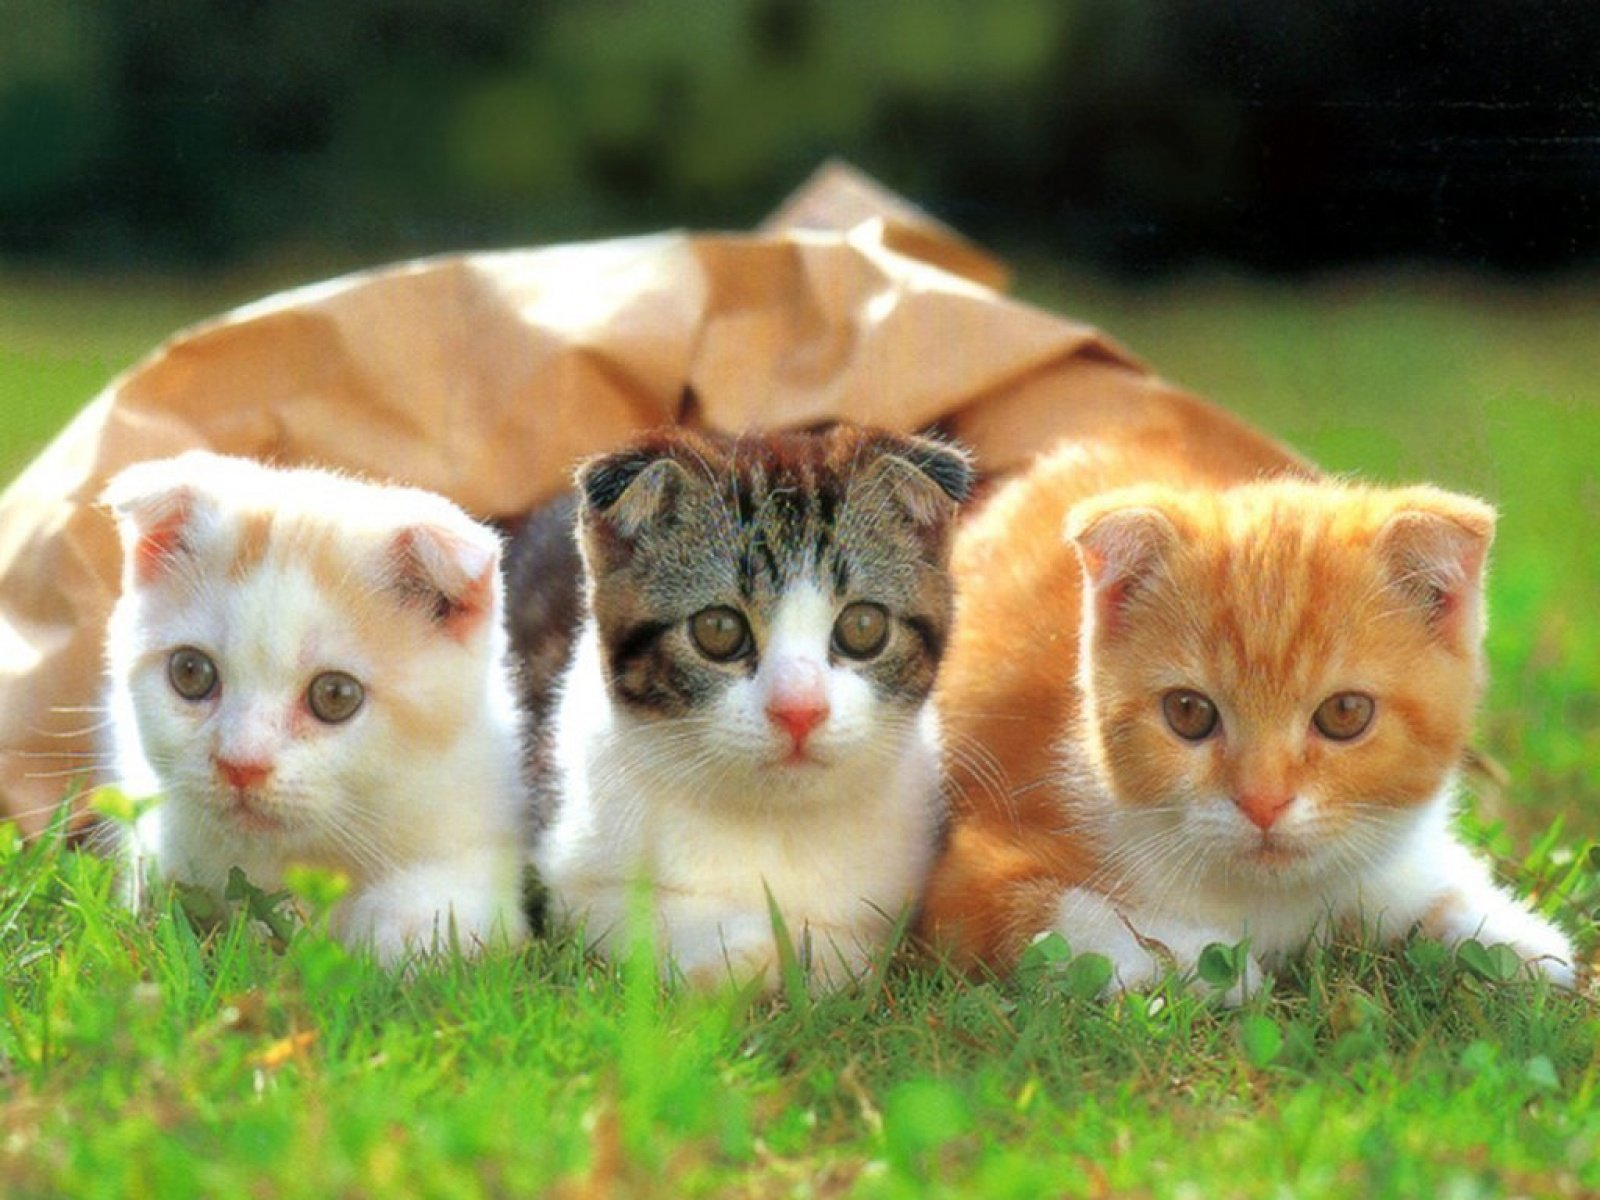 Cat Wallpapers Free Download Latest Cute Hd Animal Desktop Images 1600x1200